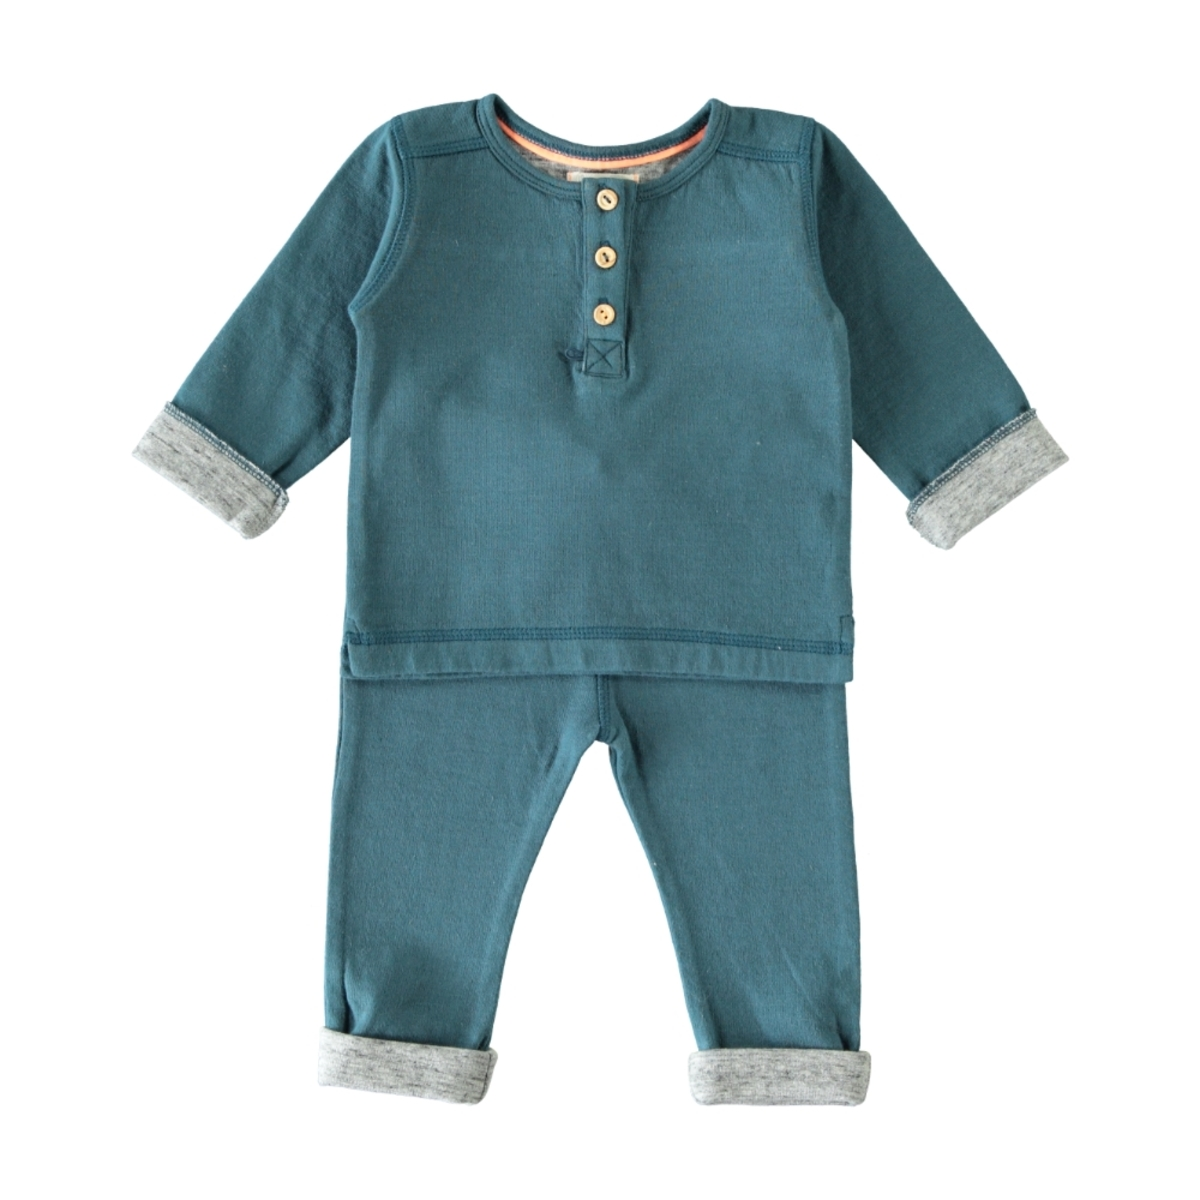 Marlot paris come jersey baby set garmentory for Unique home stays jersey